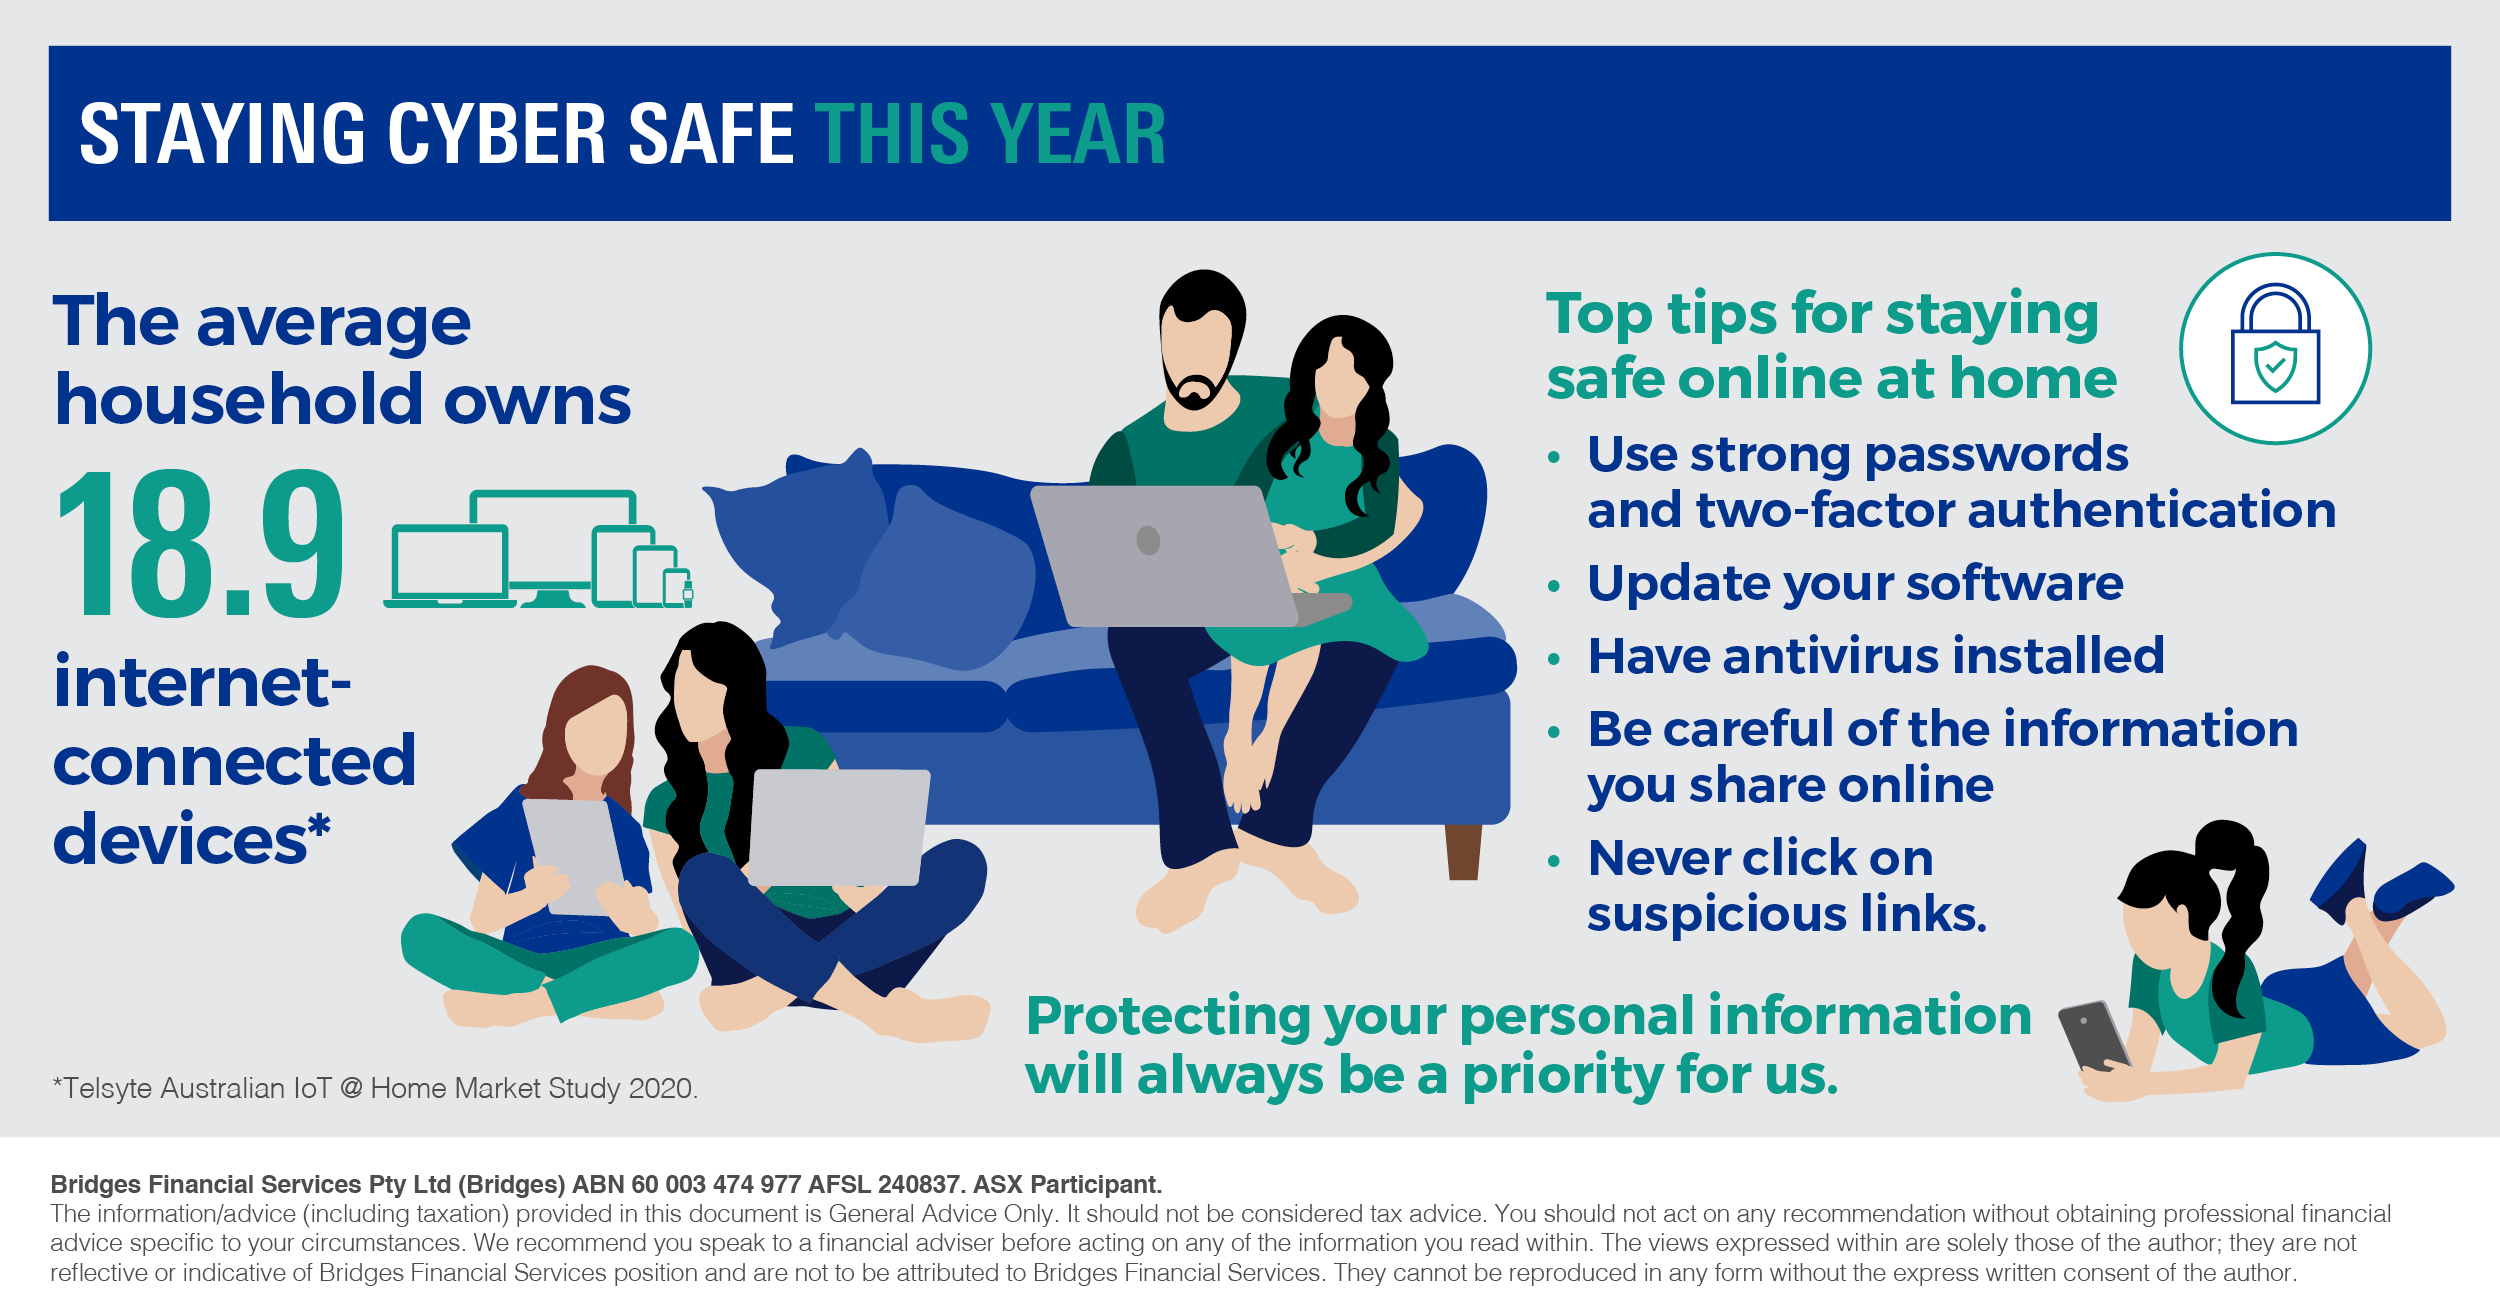 Staying cybersafe this year